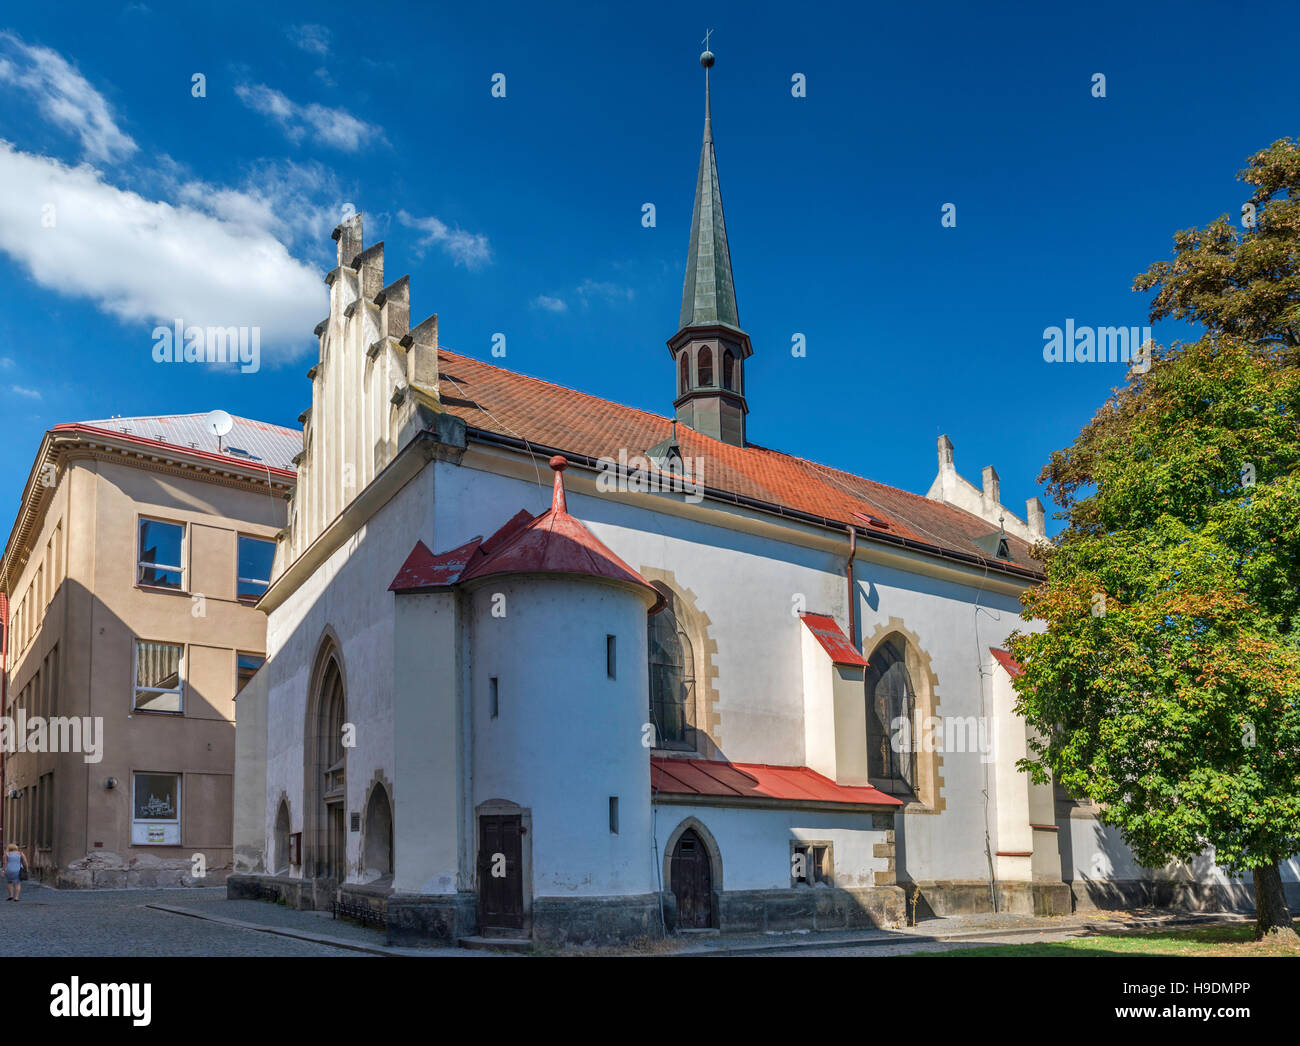 Annunciation Church in Pardubice, Bohemia, Czech Republic - Stock Image